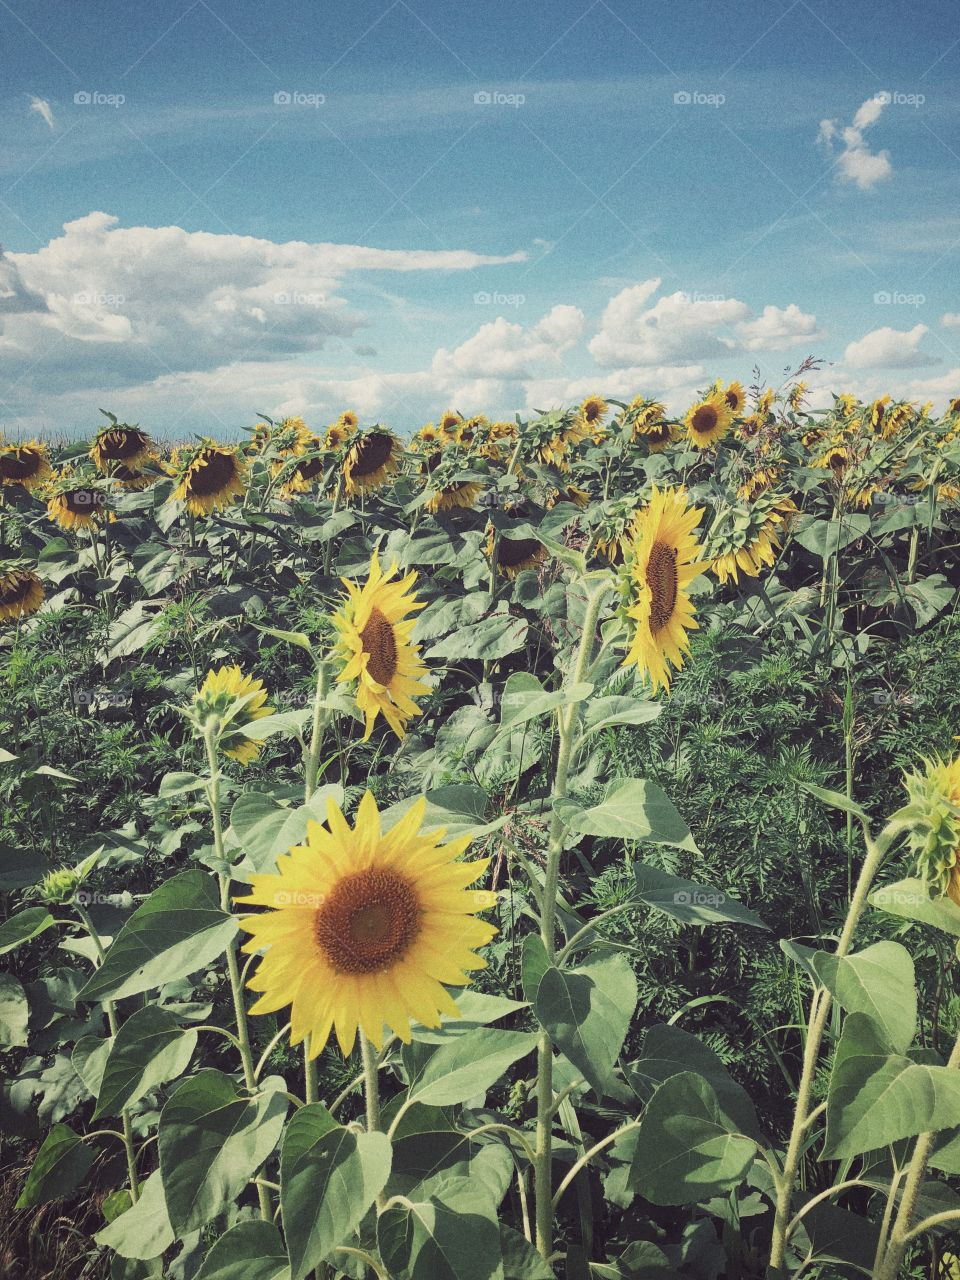 Those precious summer days. The sky, the sunflowers, blue and gold. And a lots and lots of green.